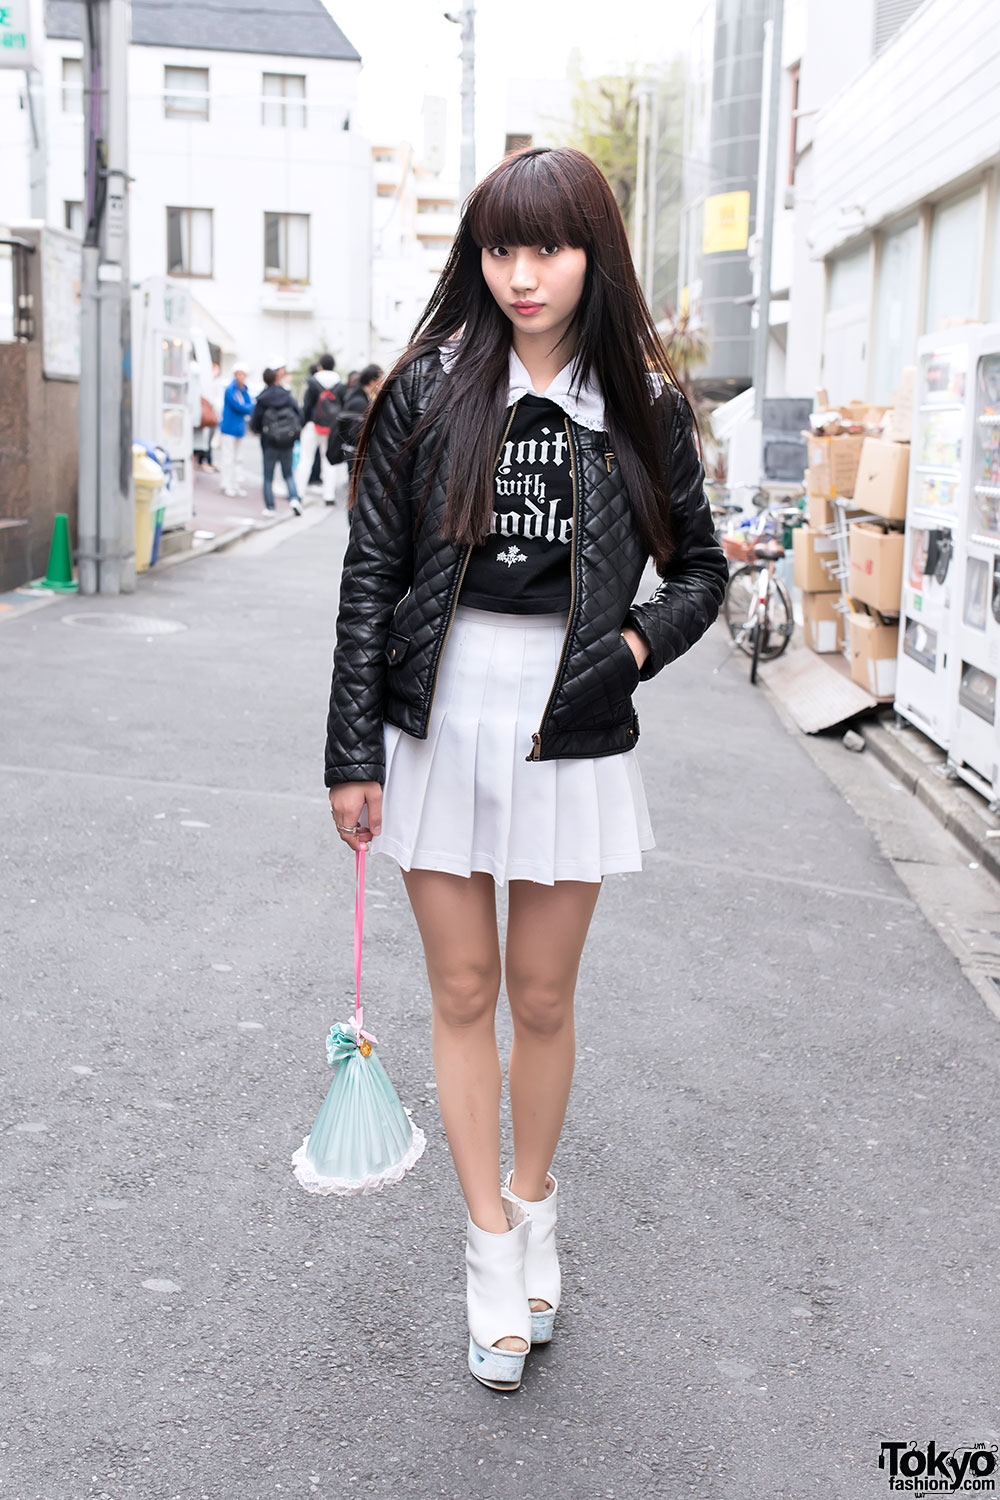 Pleated Skirt Leather Jacket Fifi Chachnil Bag In Harajuku